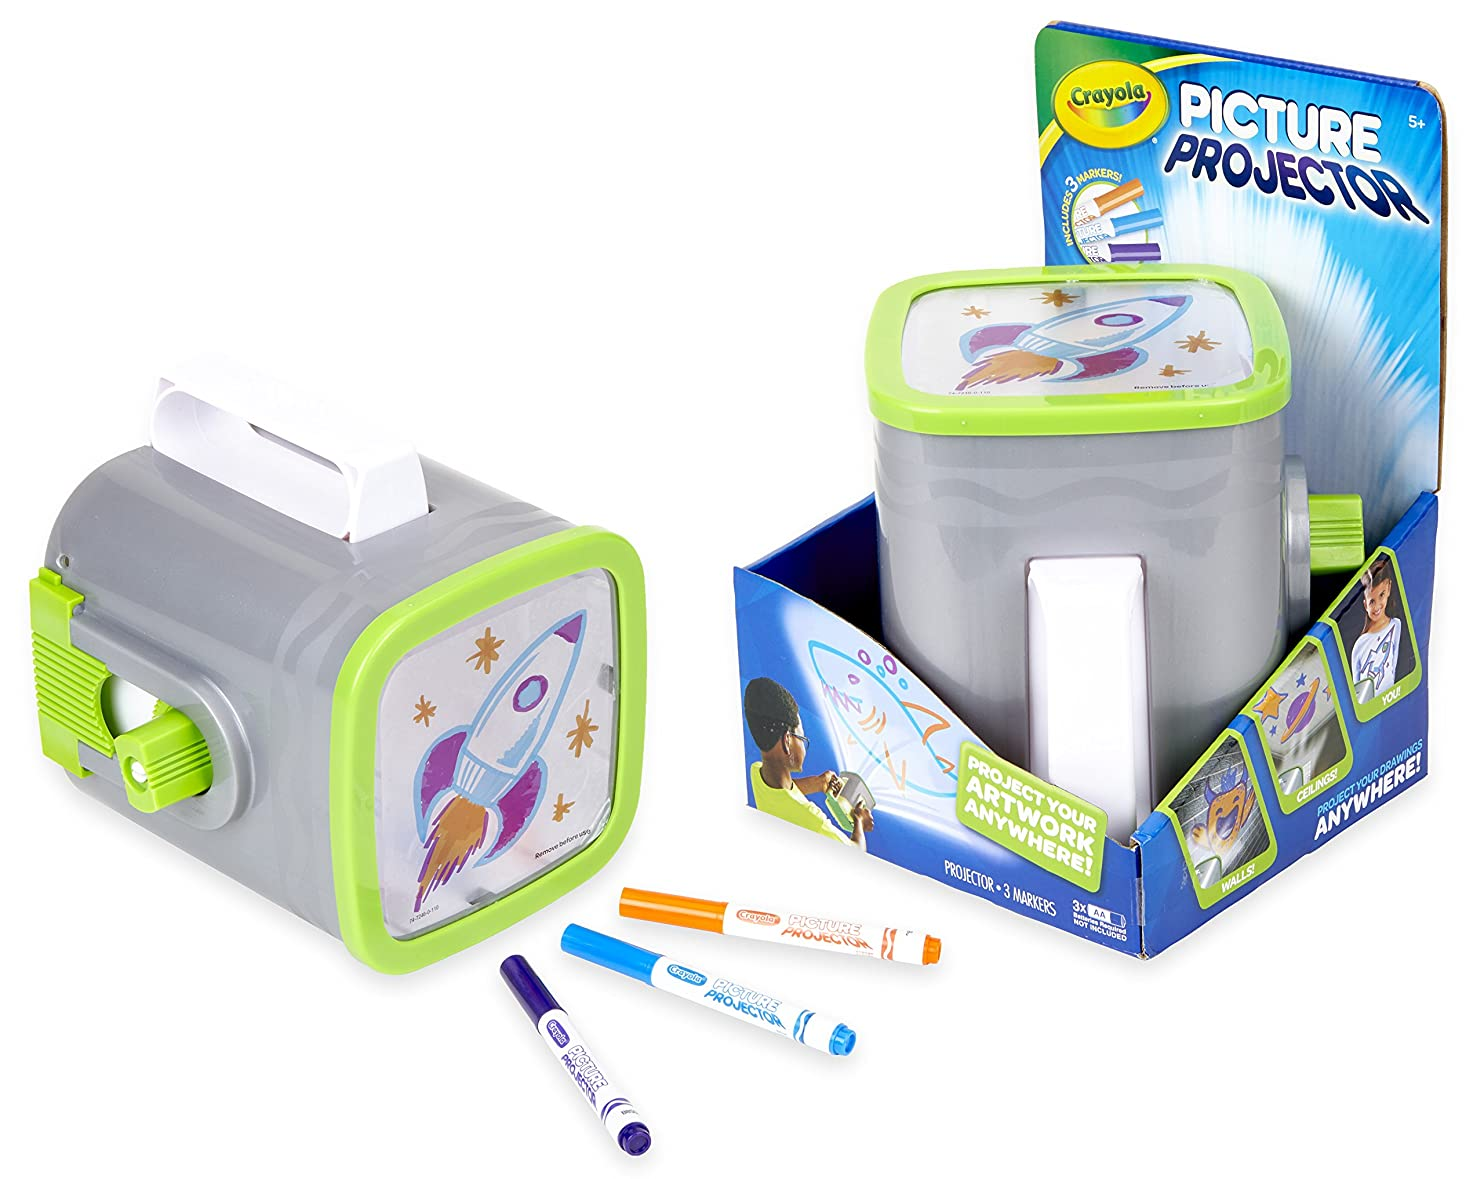 Crayola Picture Projector, Night Light Projector, Kids Flashlight, Gift, Ages 5, 6, 7, 8 kjtiarbmbbu34